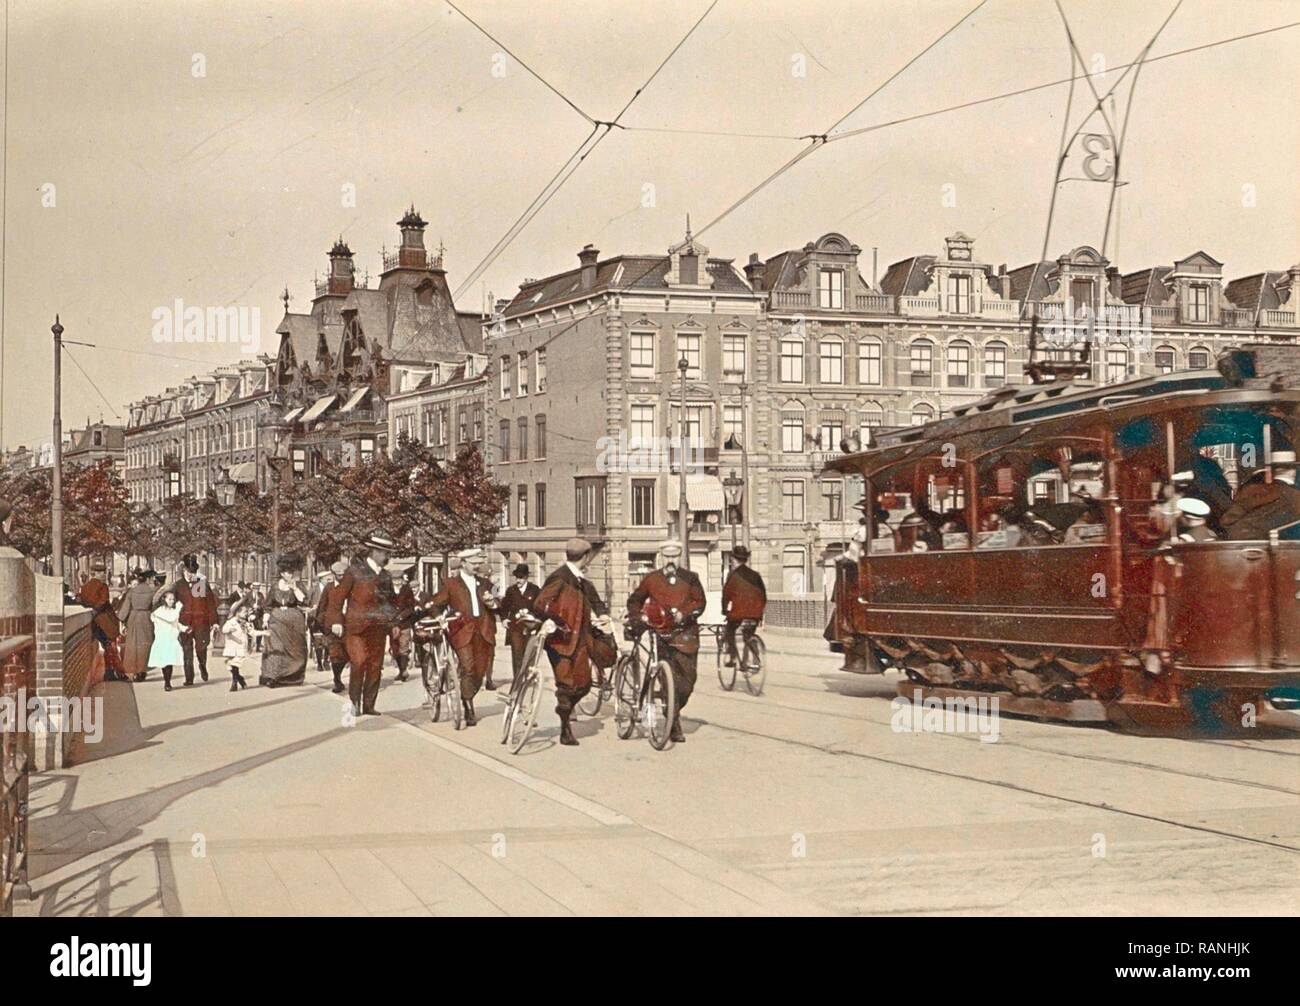 Tram 3 and passers-by on the New Amstelbrug given direction Ceintuurbaan, The Netherlands, Anonymous, c. 1903 - c reimagined - Stock Image